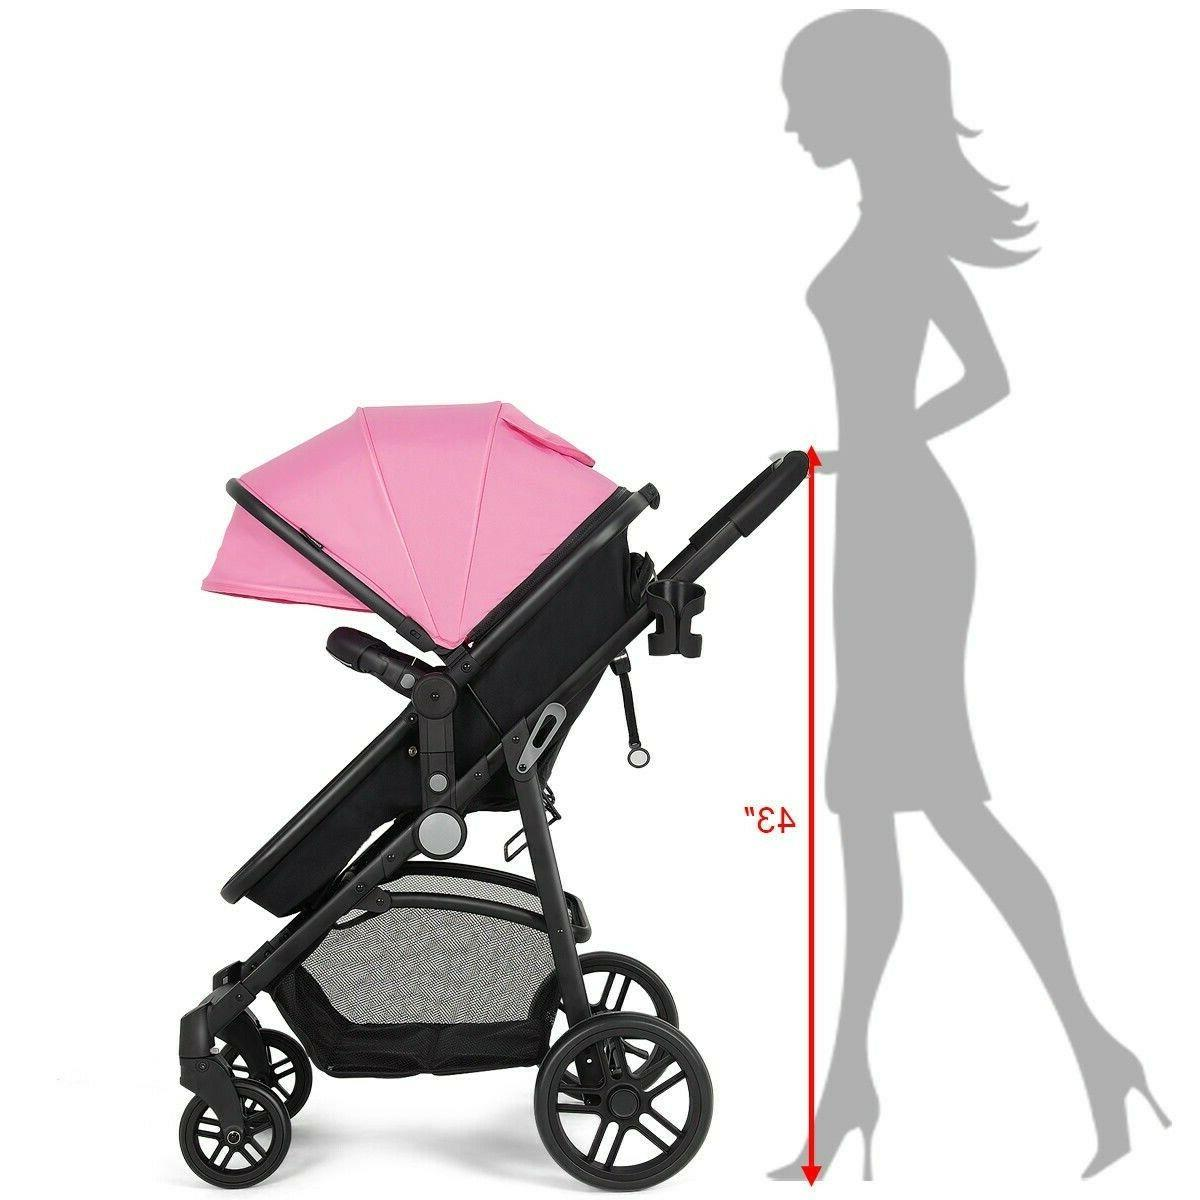 Newborn Foldable Strollers 2 in Pink New